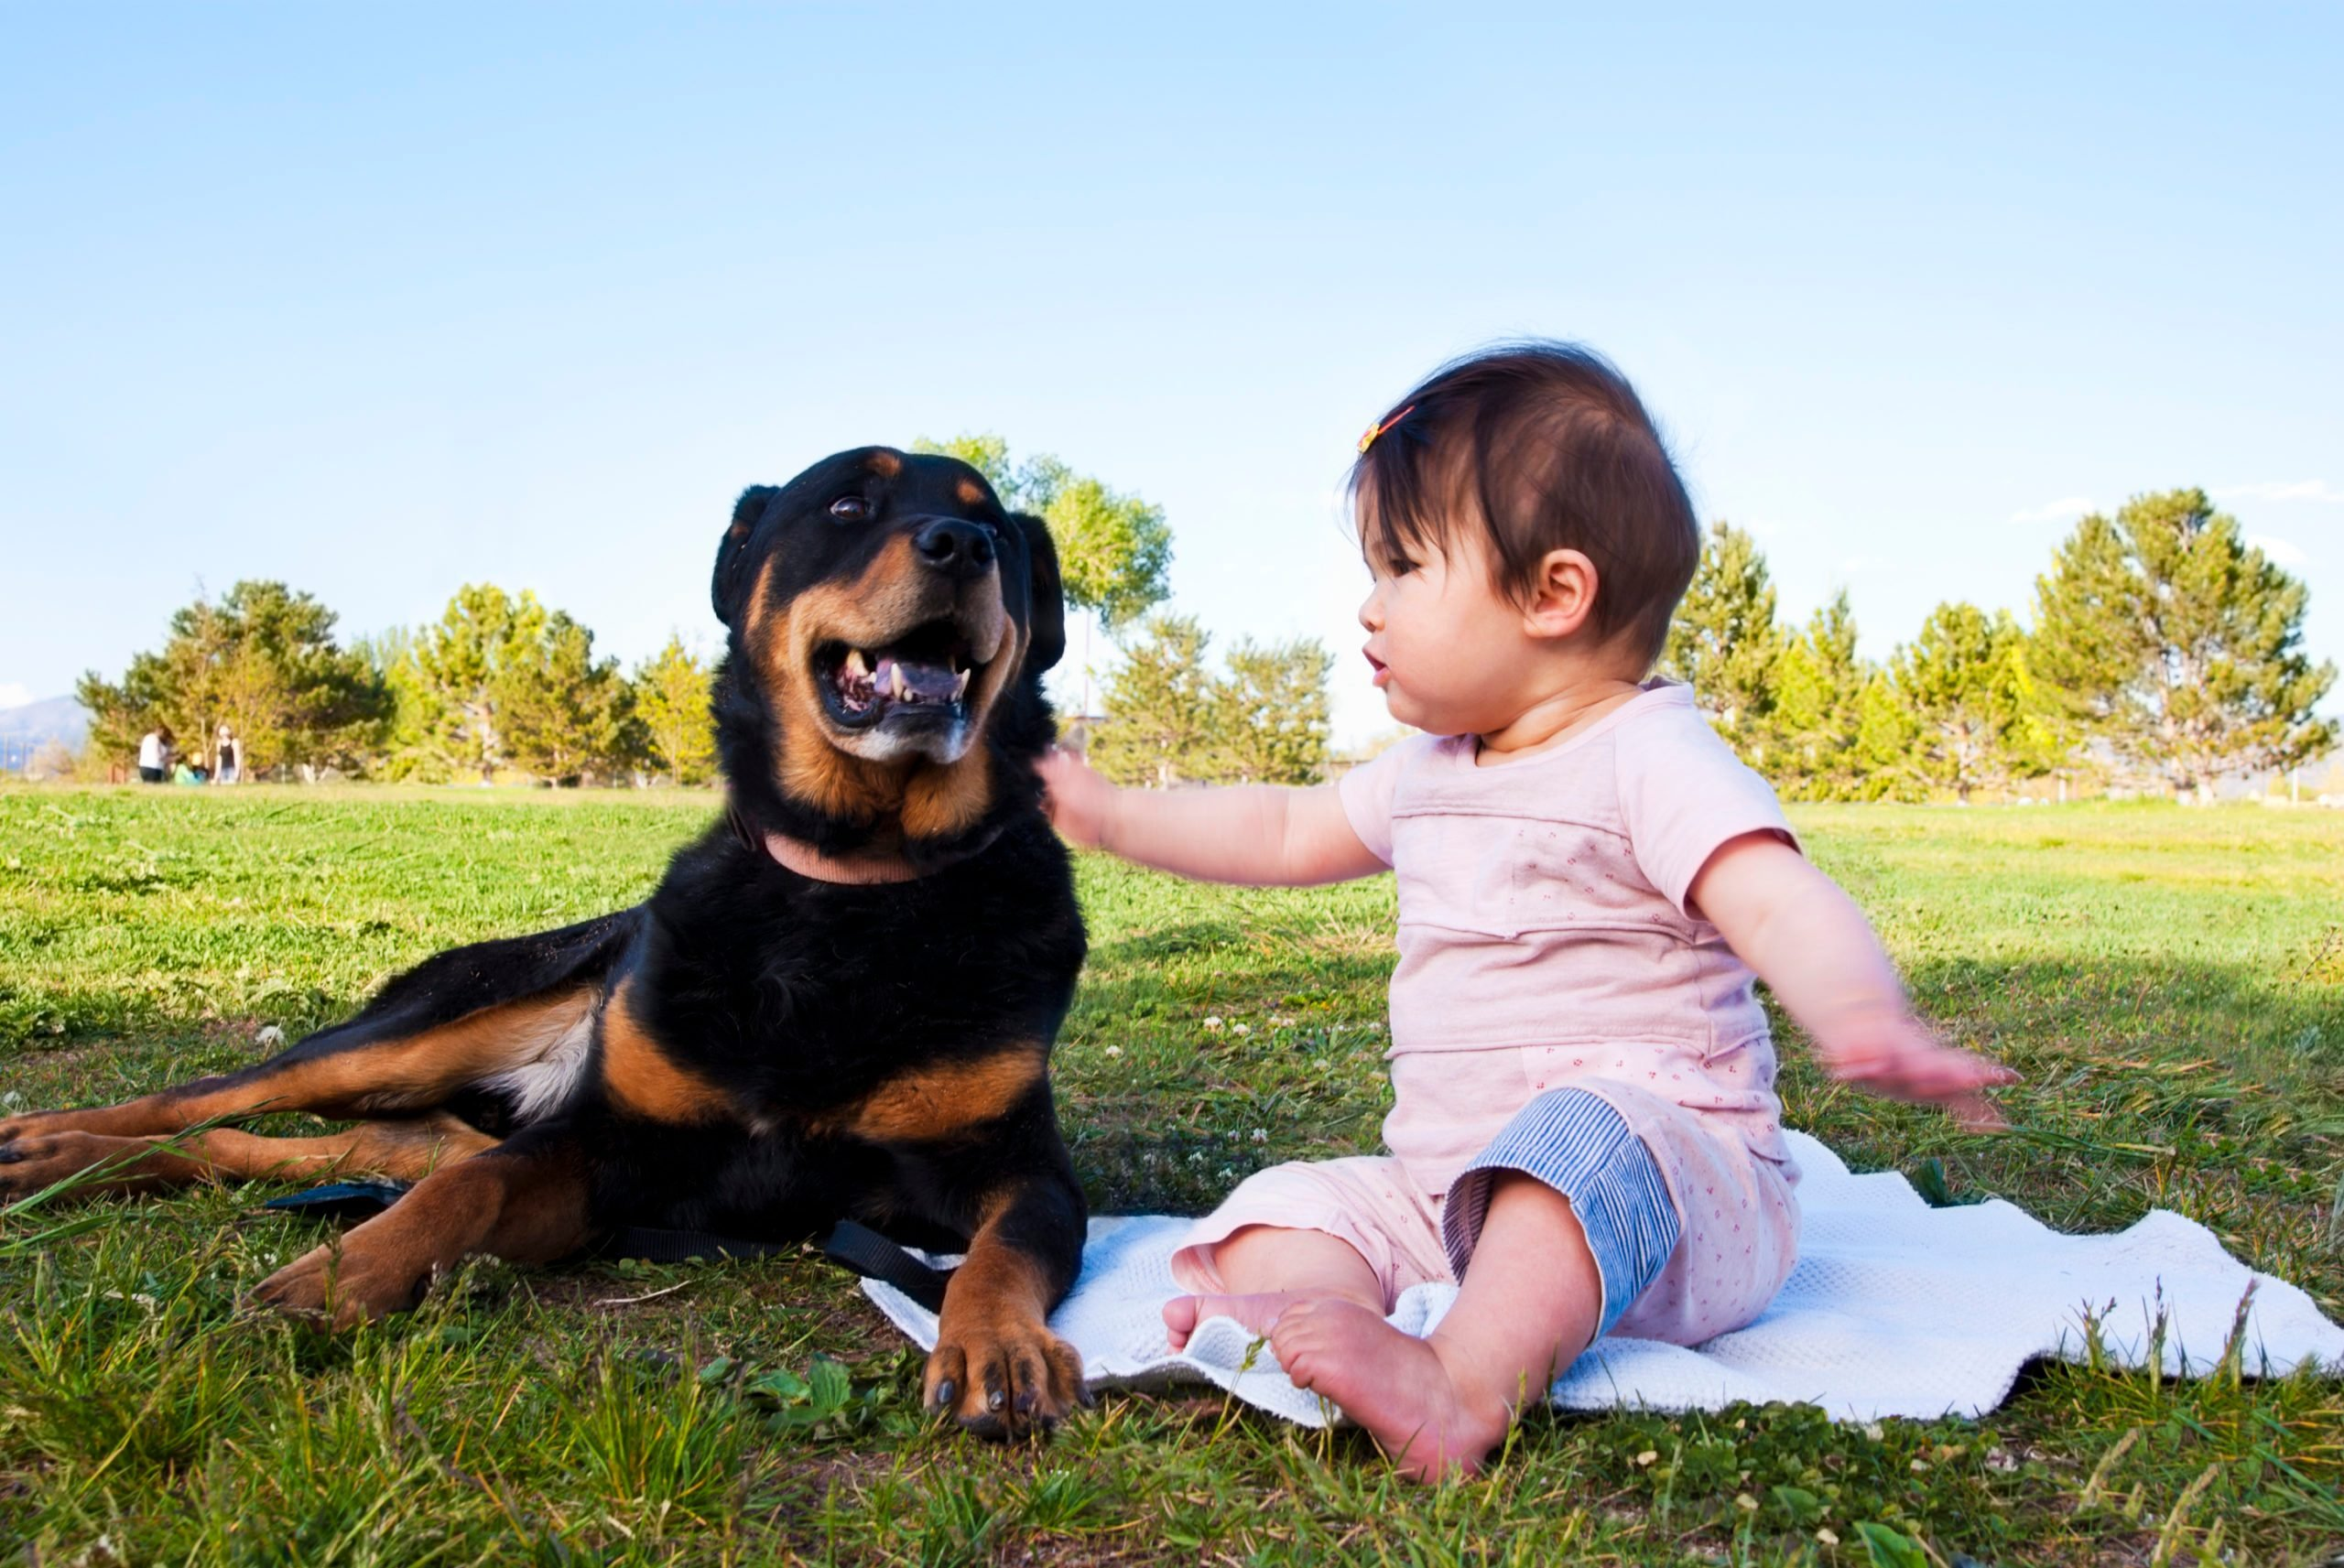 Friendship between dog and baby